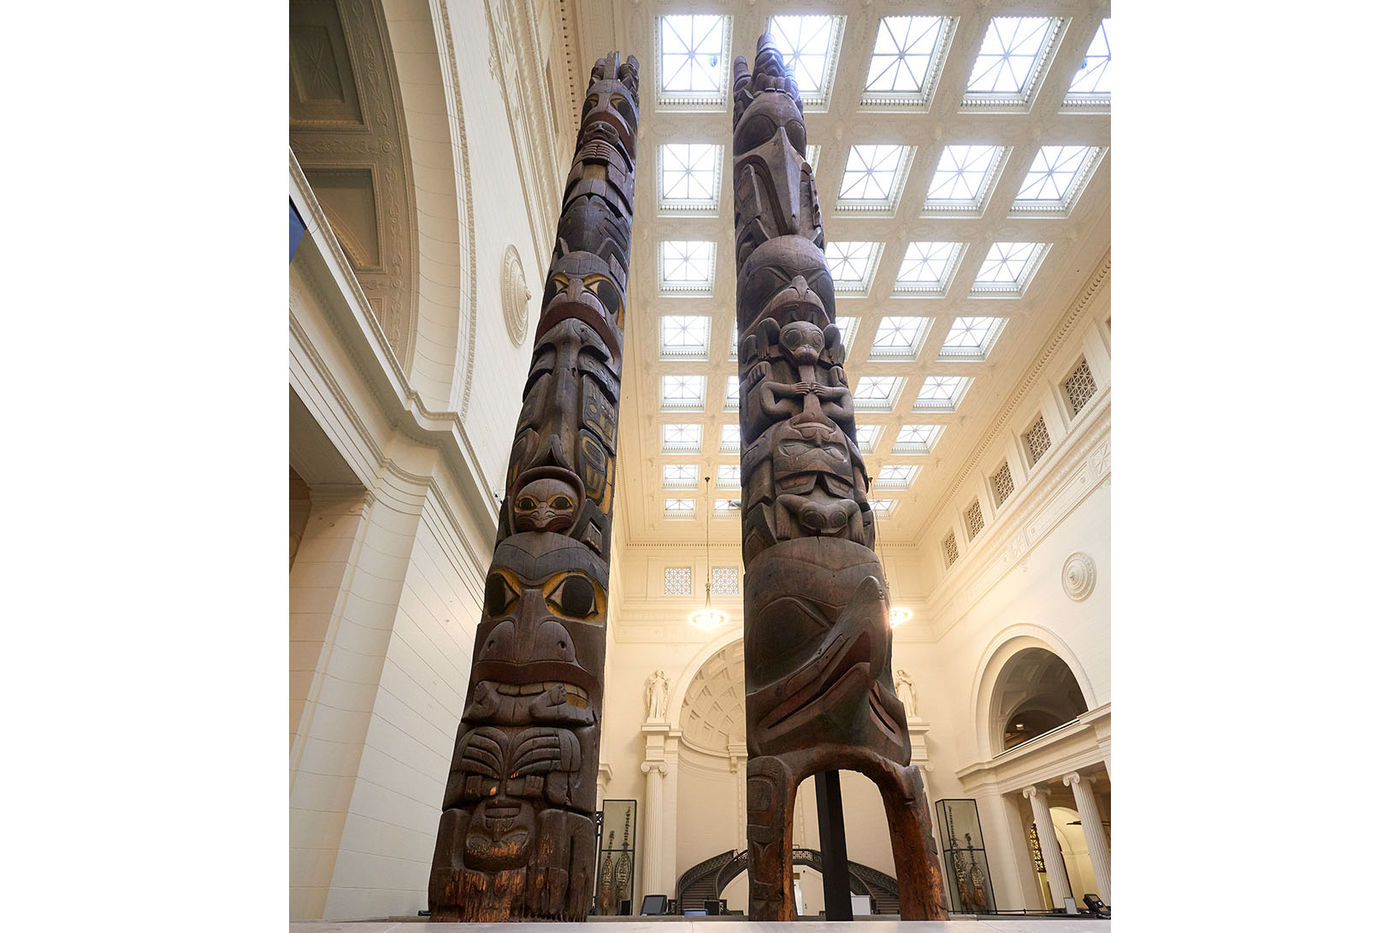 Looking up at two wooden totem poles standing side by side in the museum's main hall, with skylights in the ceiling in the background. The poles are intricately carved with a variety of human and animal faces, and some small patches of paint are visible.